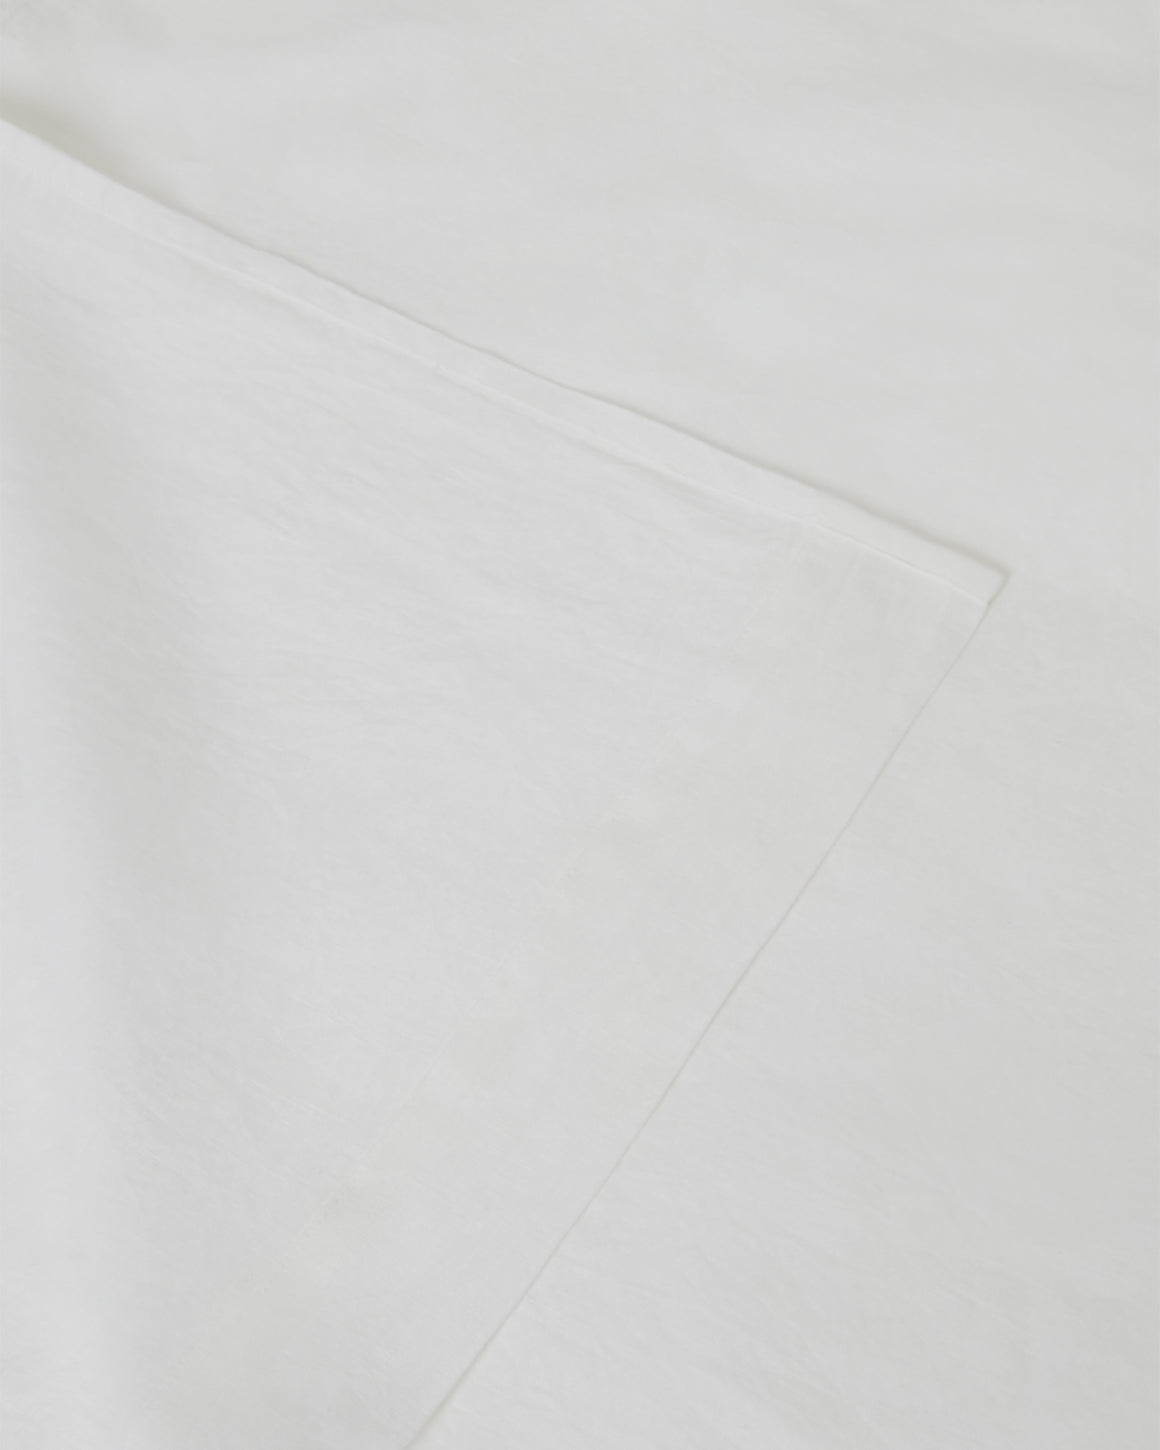 Pair of filled pillowcases in creamy white milk